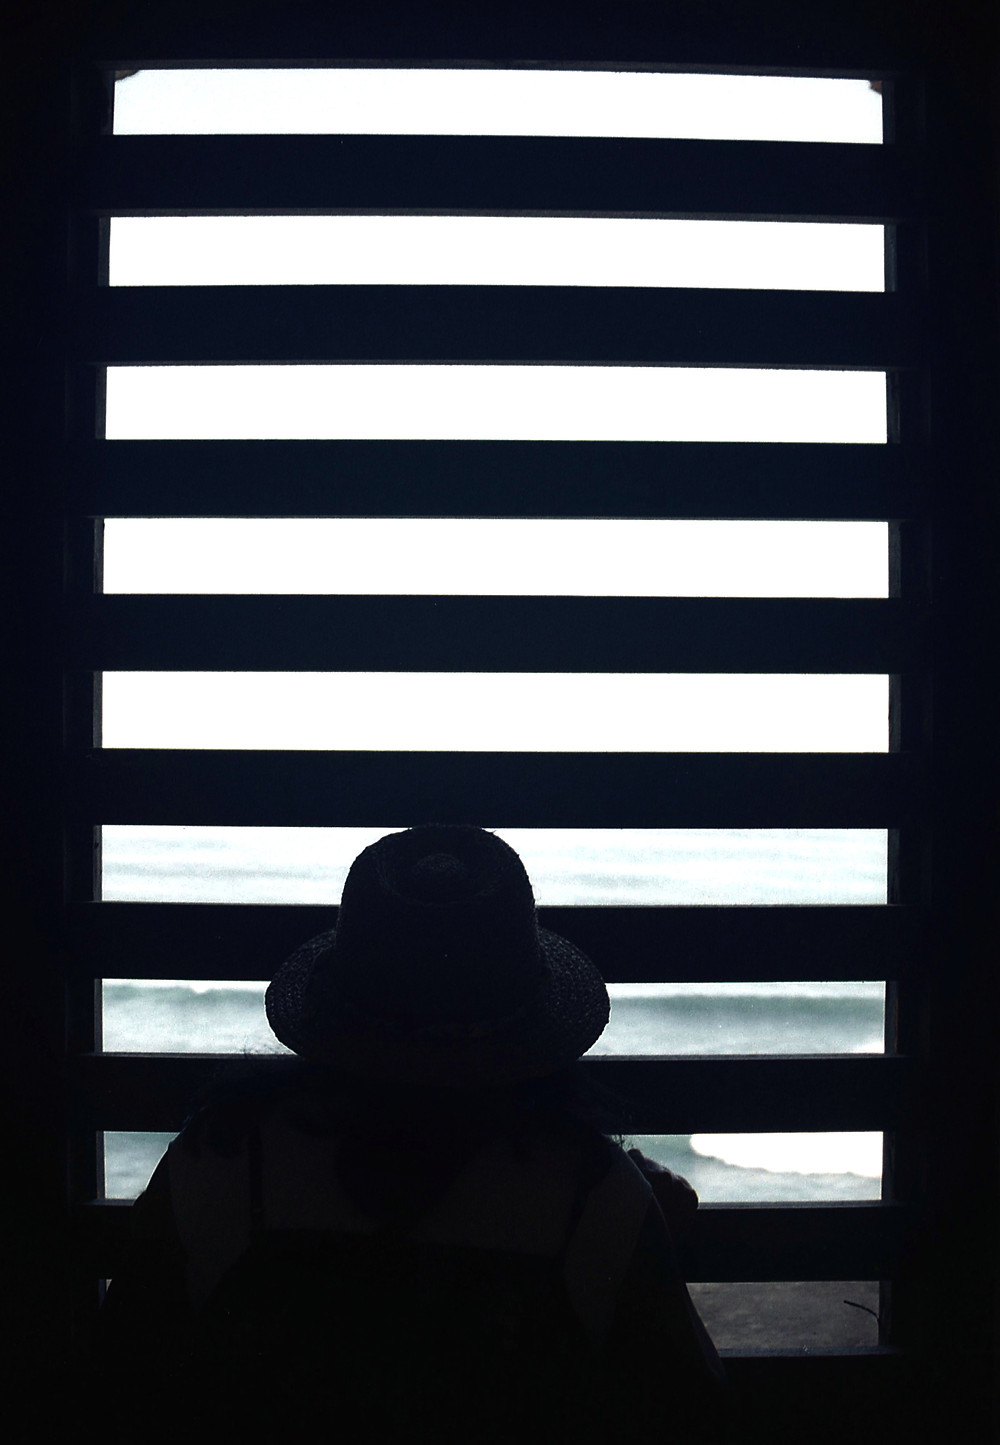 silhouette of a woman in San Juan, Puerto Rico